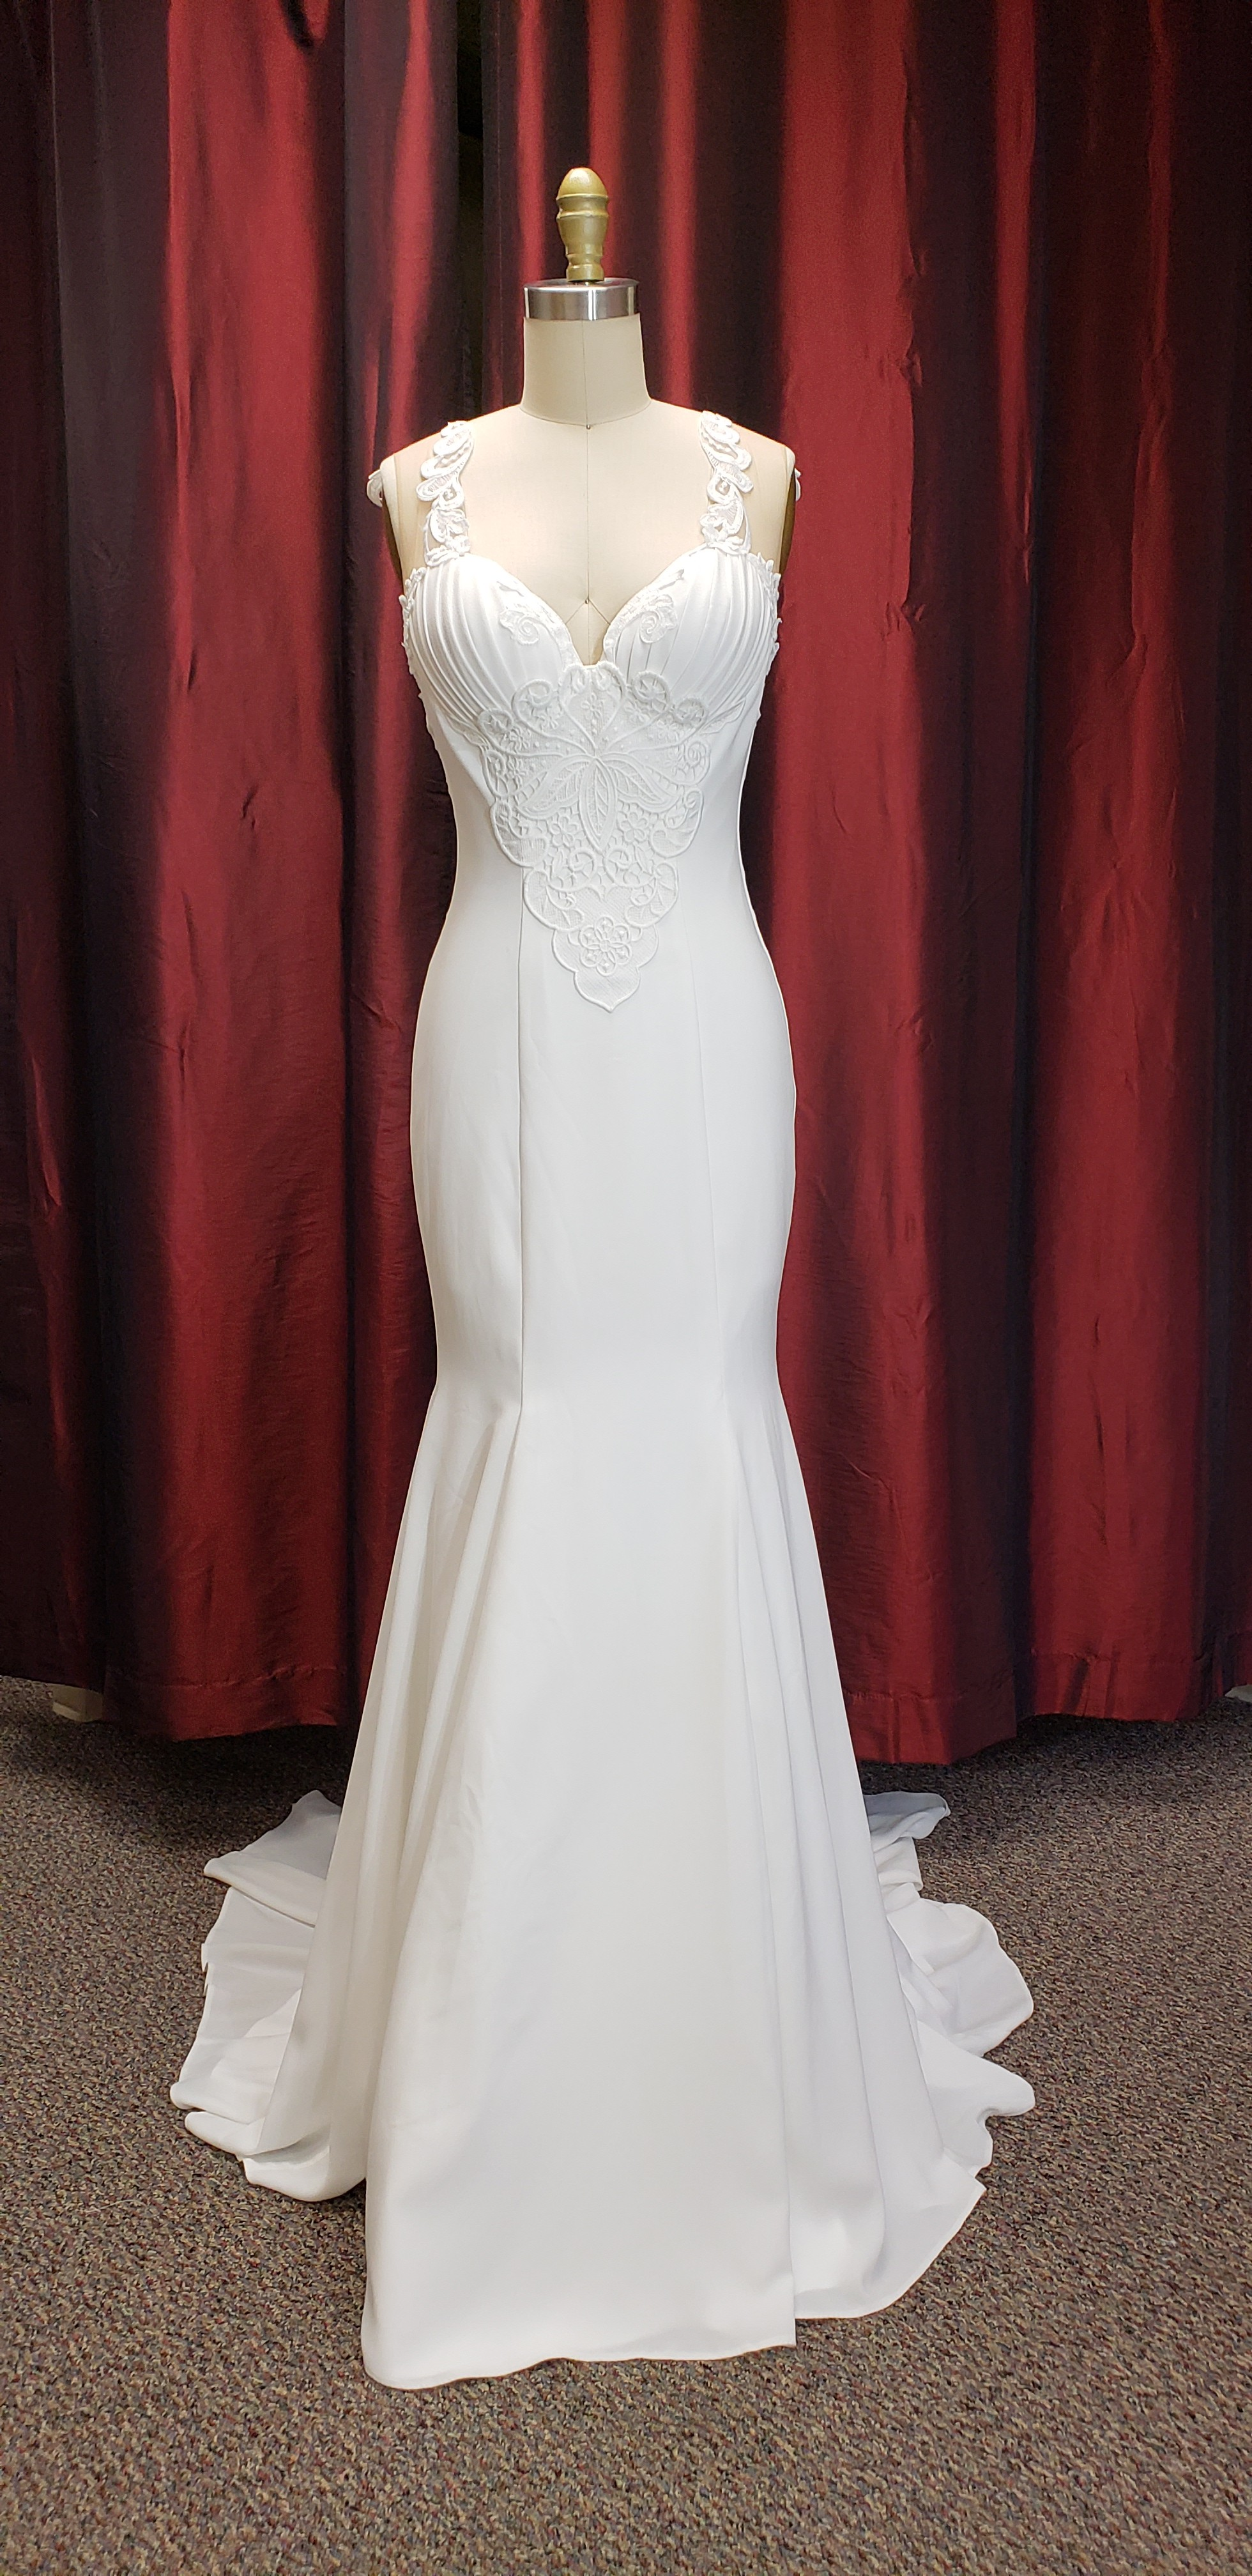 Mermaid Ivory Wedding Dress Size 6